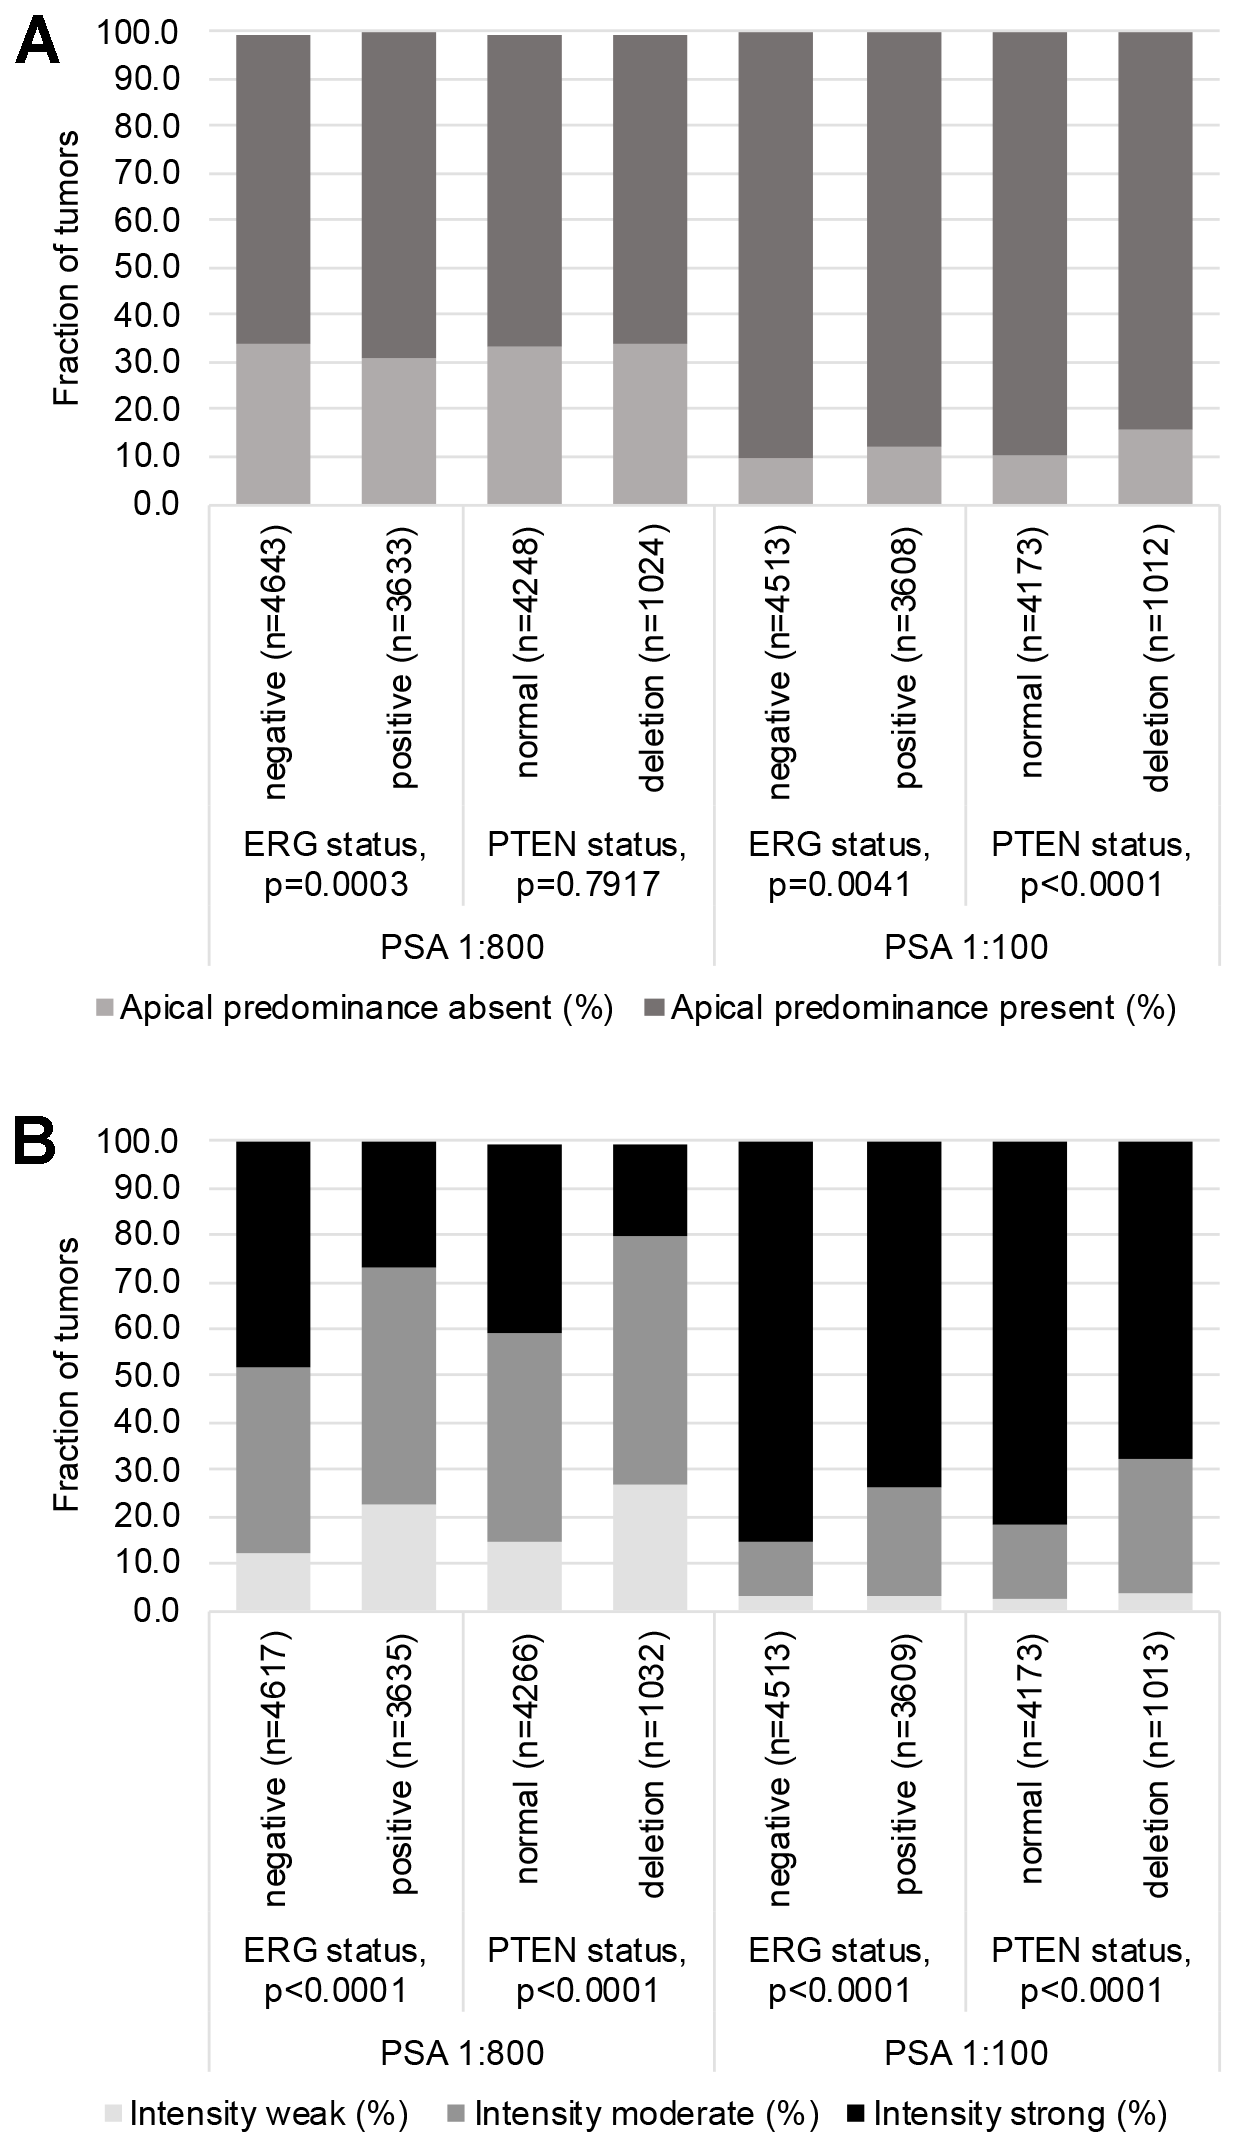 Associations between PSA immunostaining results (using the anti PSA antibody at 1:100 and 1:800 dilution), TMPRSS2: ERG fusion status and PTEN deletion status.